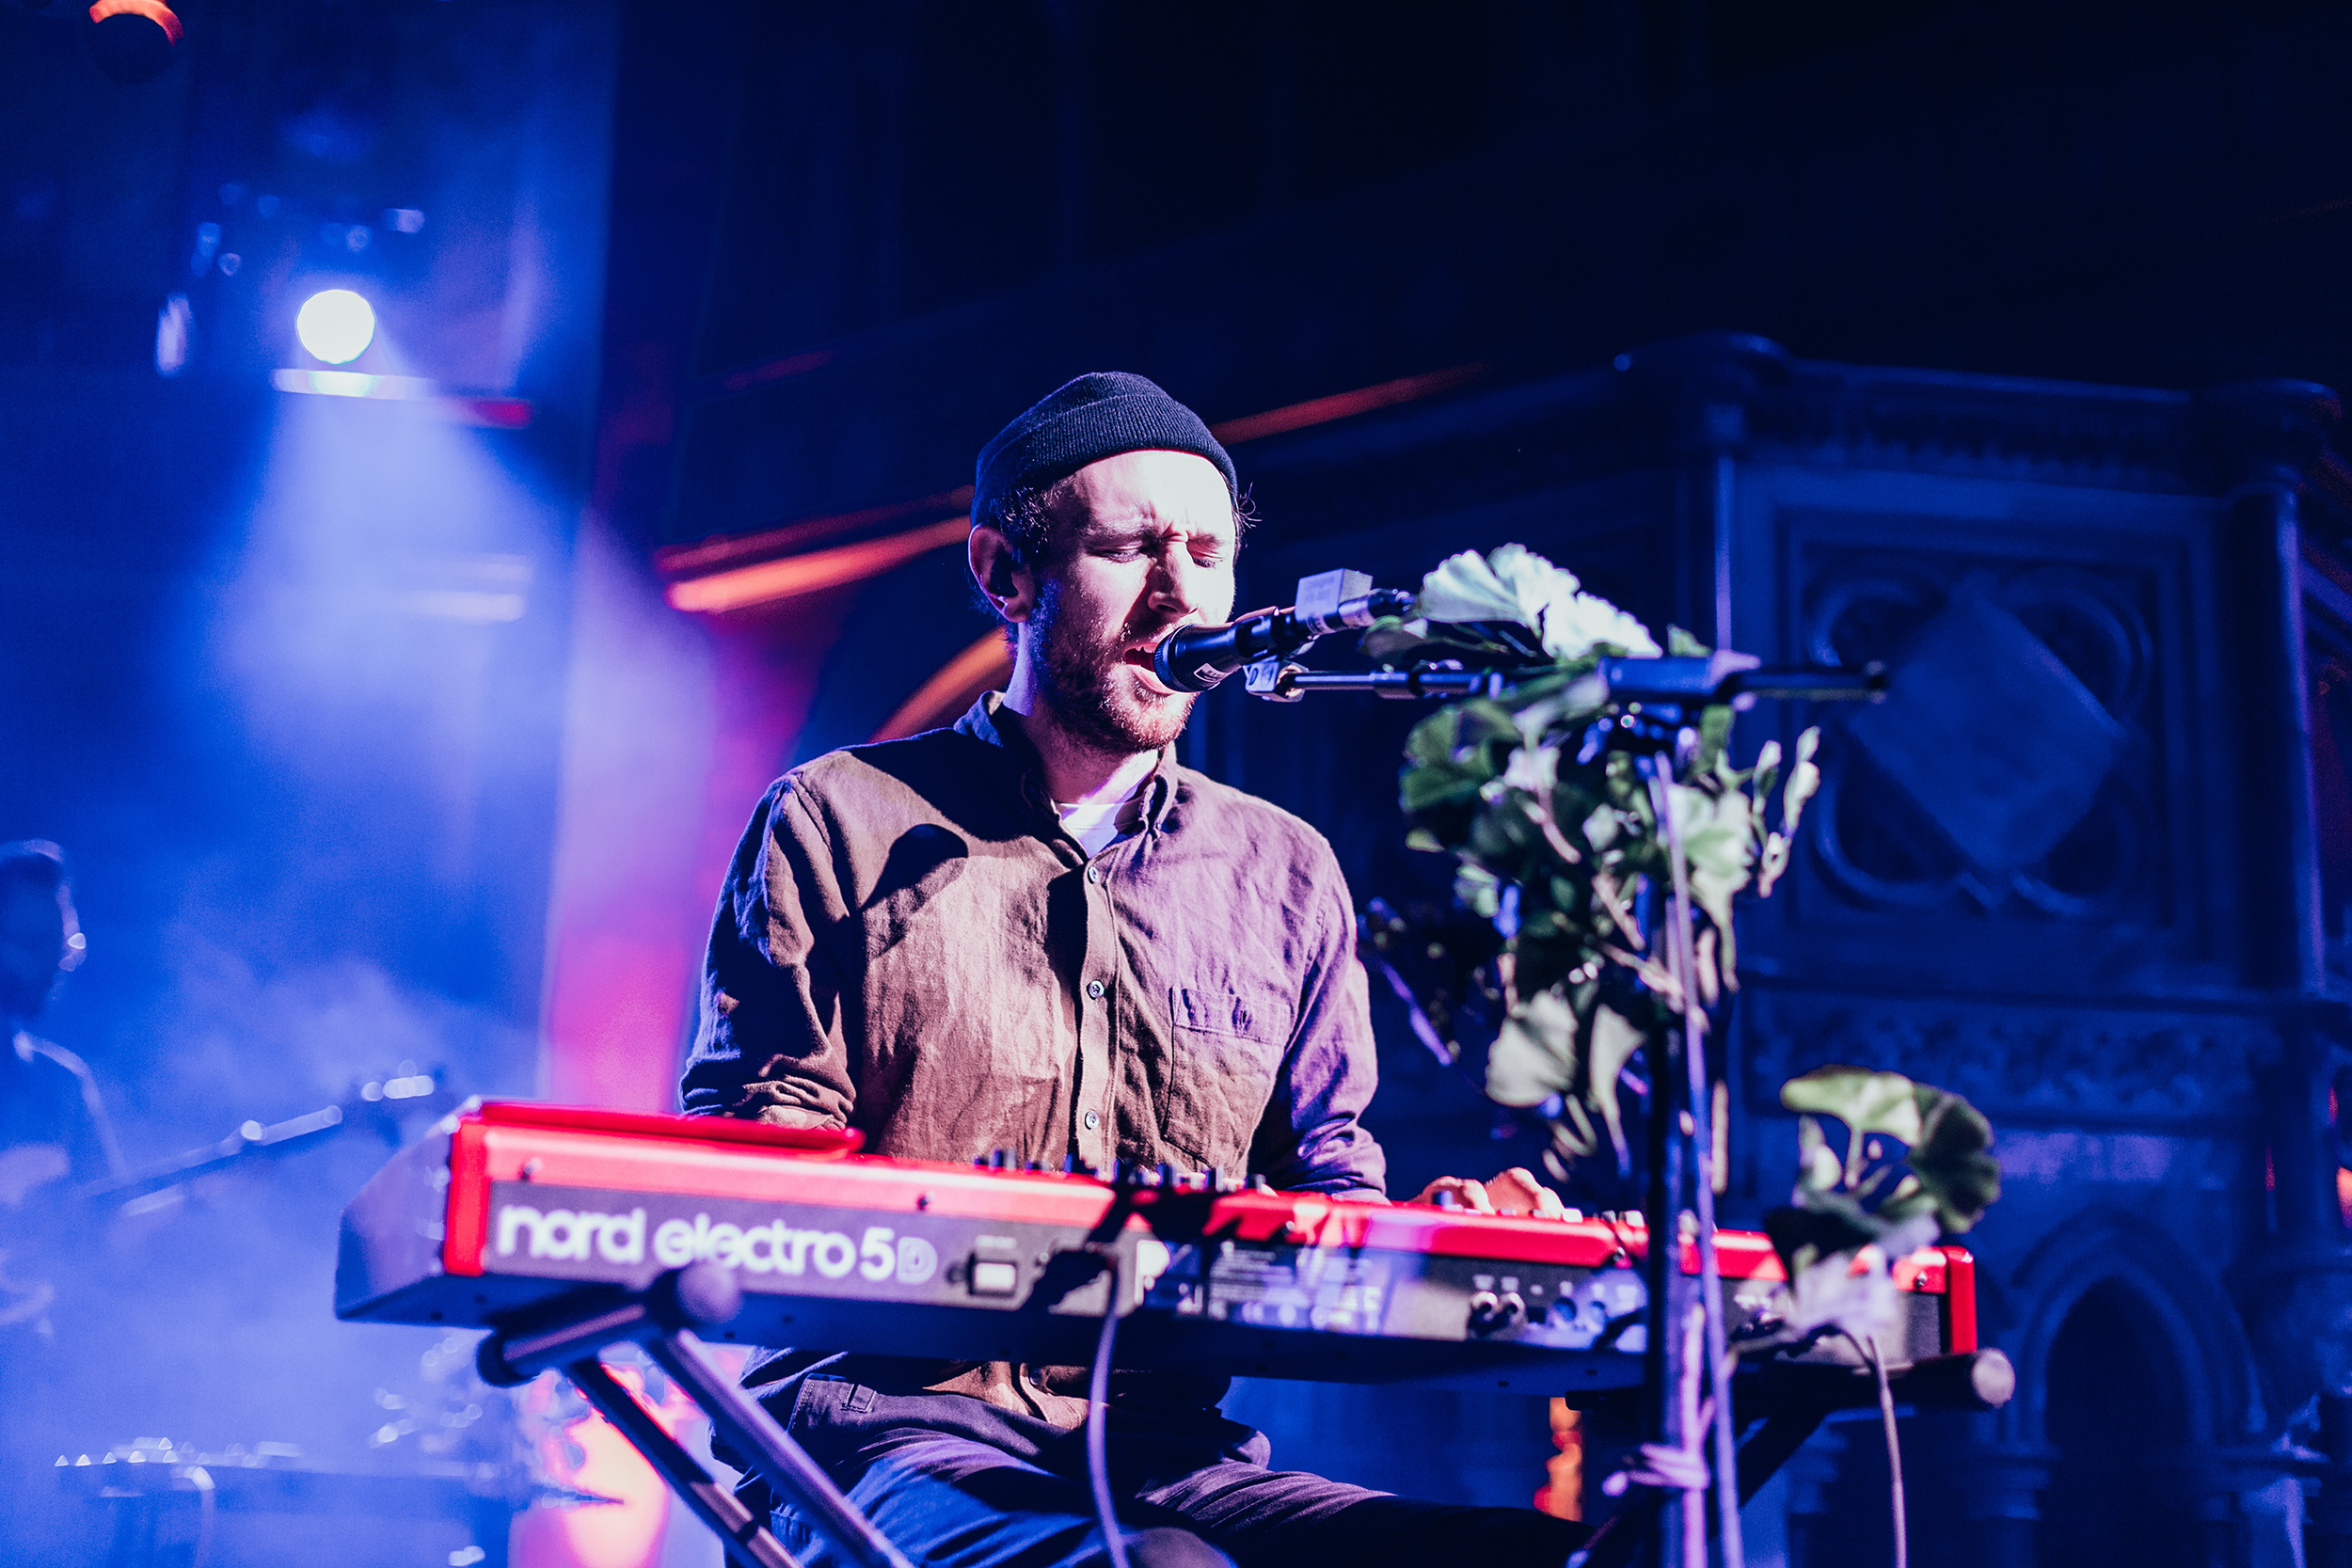 Novo_Amor_221018_Communion-(10-of-17).jpg